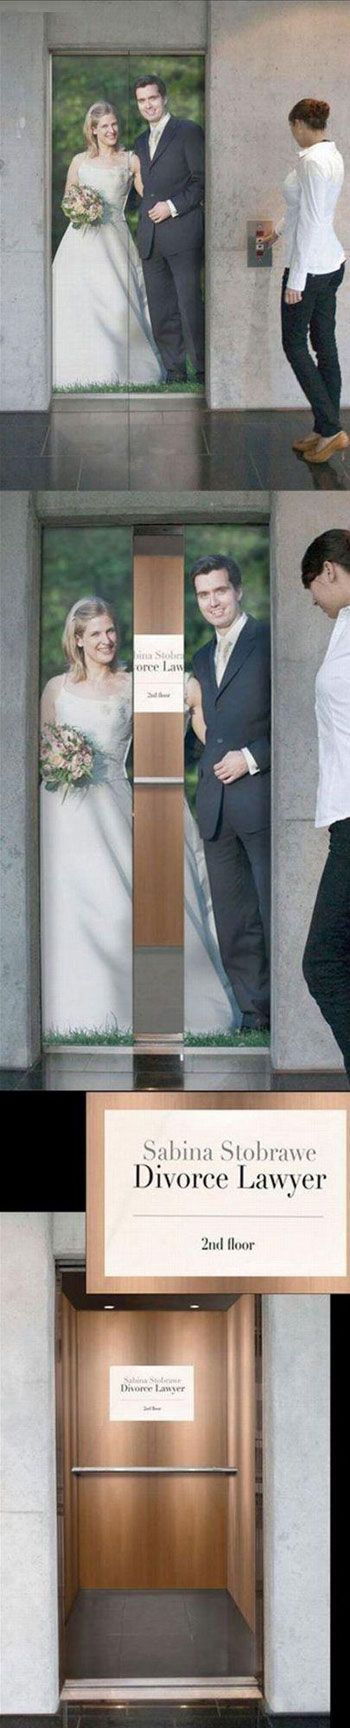 clever advertising - open doors reveal a divorce lawyer details www.arcreactions.com